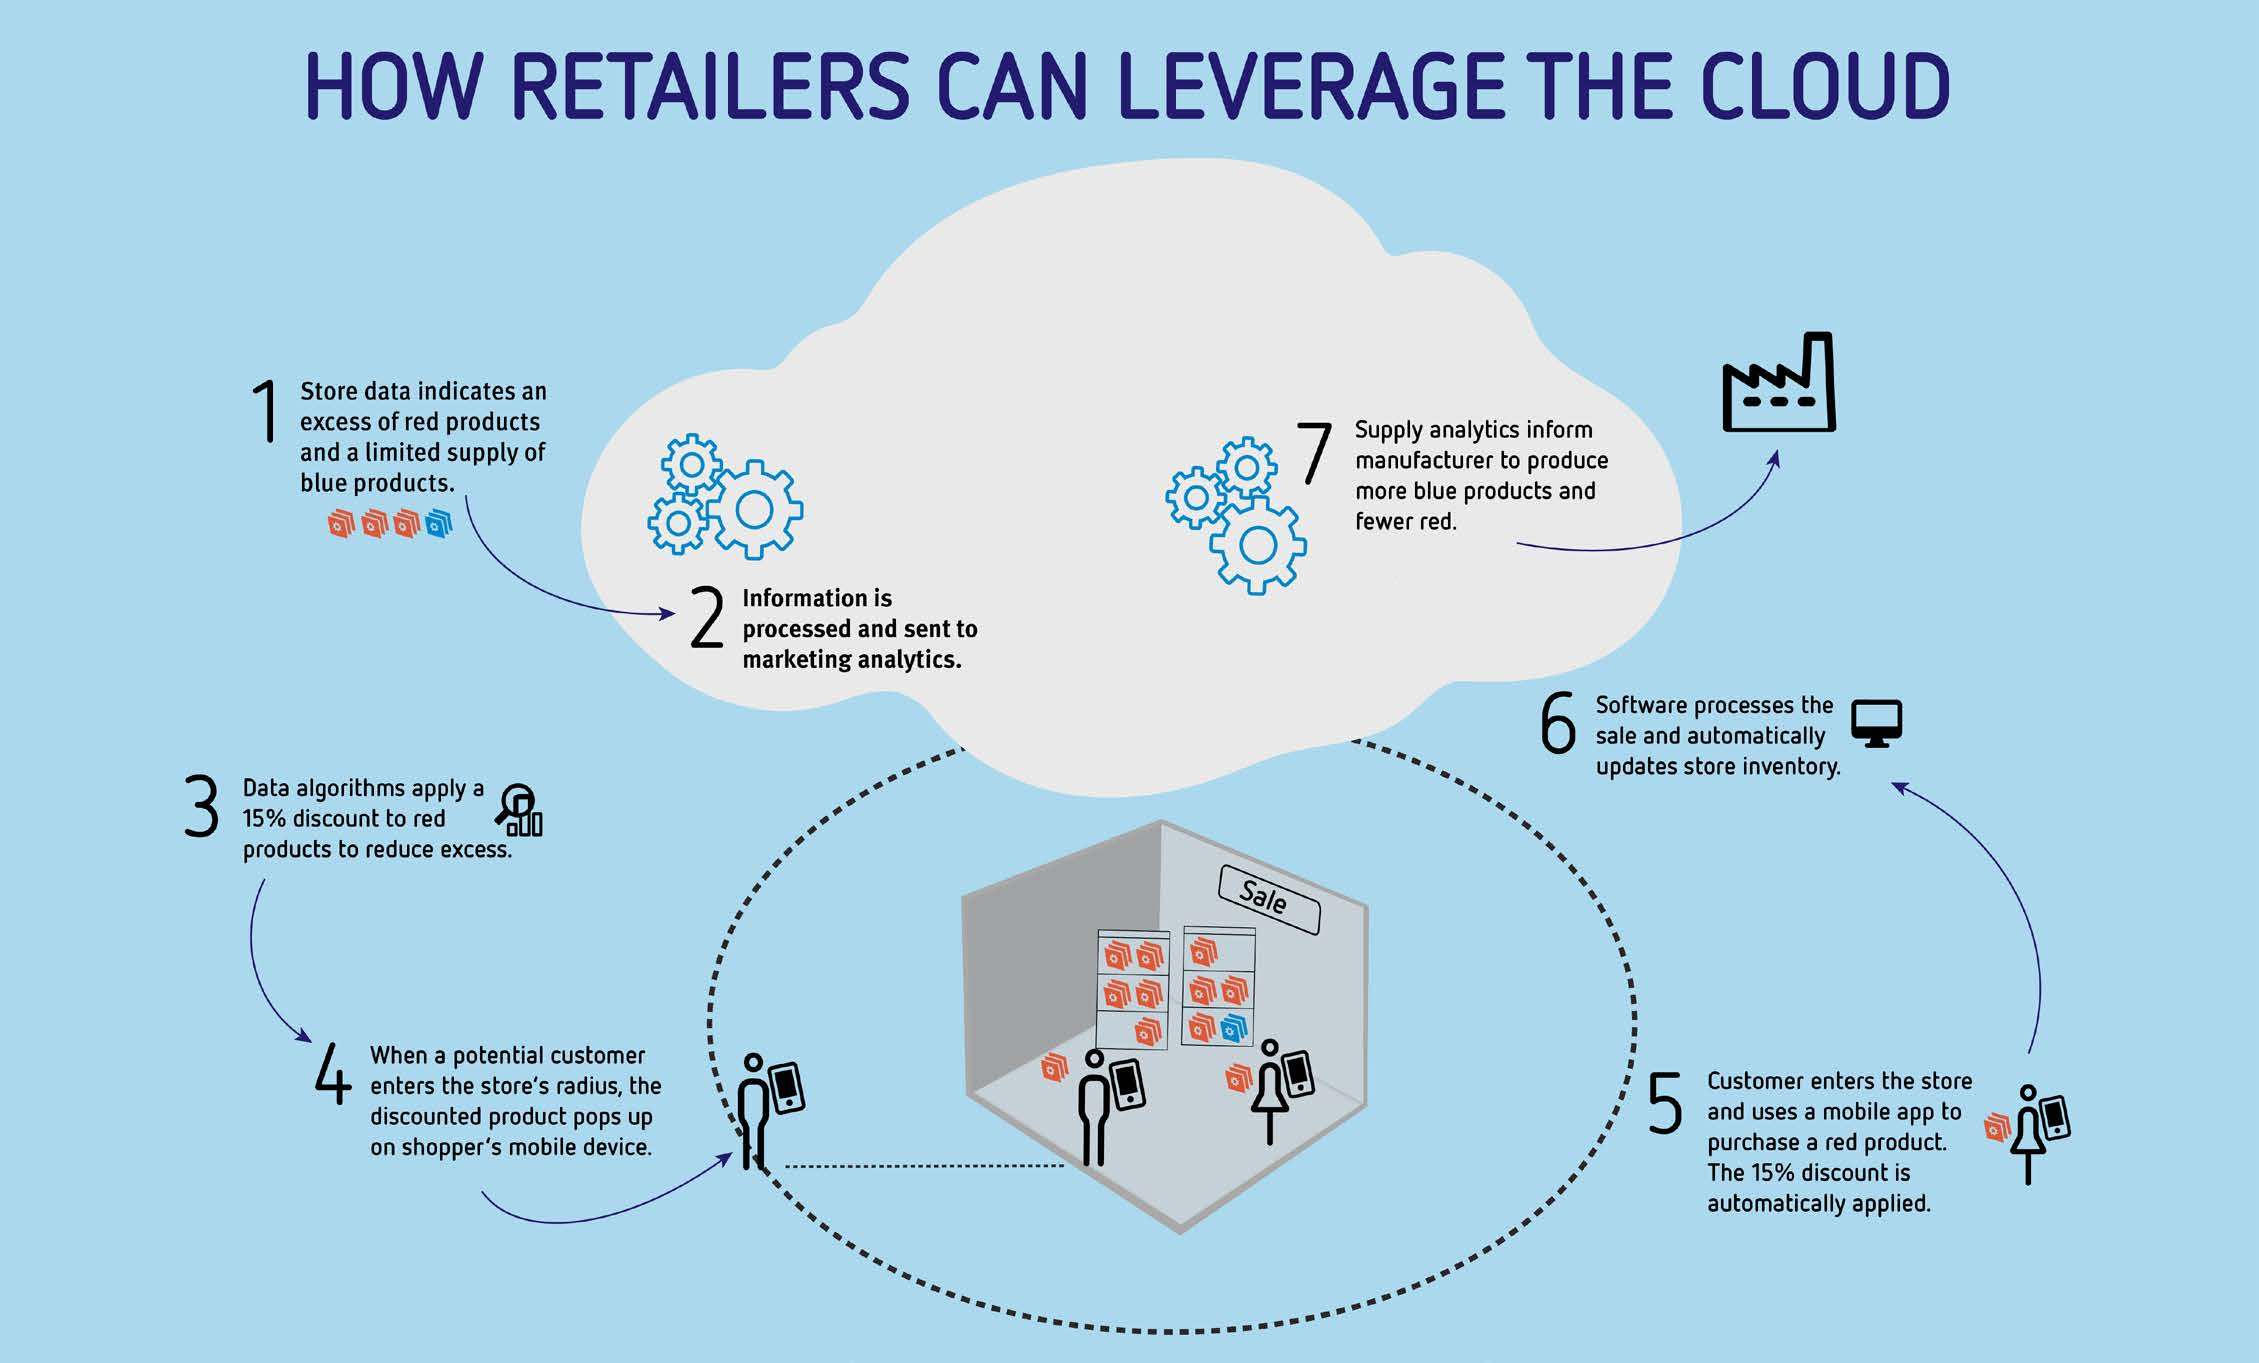 An example of how retailers can leverage the cloud:   1. Store data indicates an excess of red products and a limited supply of blue products.  2. Information is processed and sent to marketing analytics.  3. Data algorithms apply a 15% discount to products to reduce excess.  4. When a potential customer enters the store's radius, the discounted product pops on the shopper's mobile device.   5. The customer enters the store and uses a mobile app to purchase a red product. The 15% discount is automatically applied.  6. Software processes the sale and automatically updates store inventory.   7. Supply analytics inform the manufacturer to produce more blue products and fewer red products.